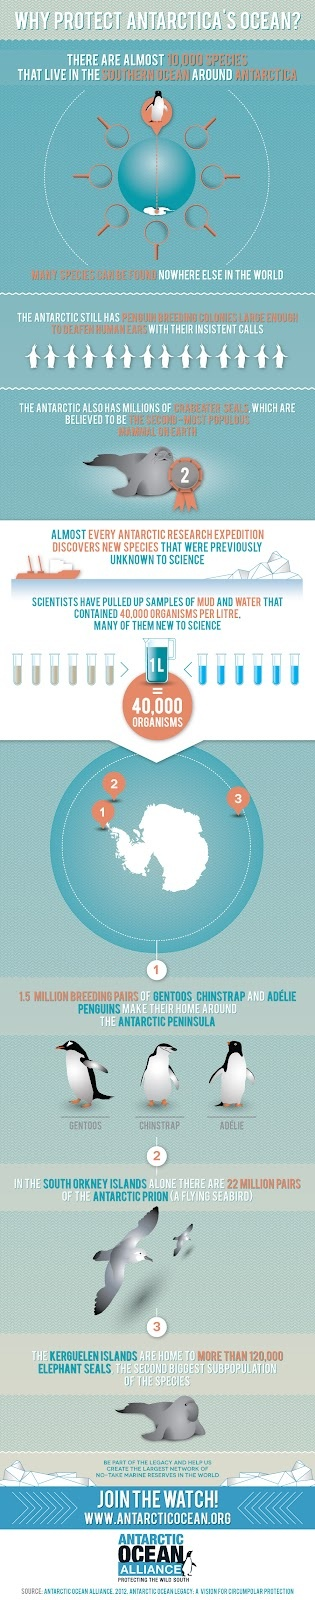 The Living Ocean: Why Protect Antarctica 's Ocean? (Infographic)